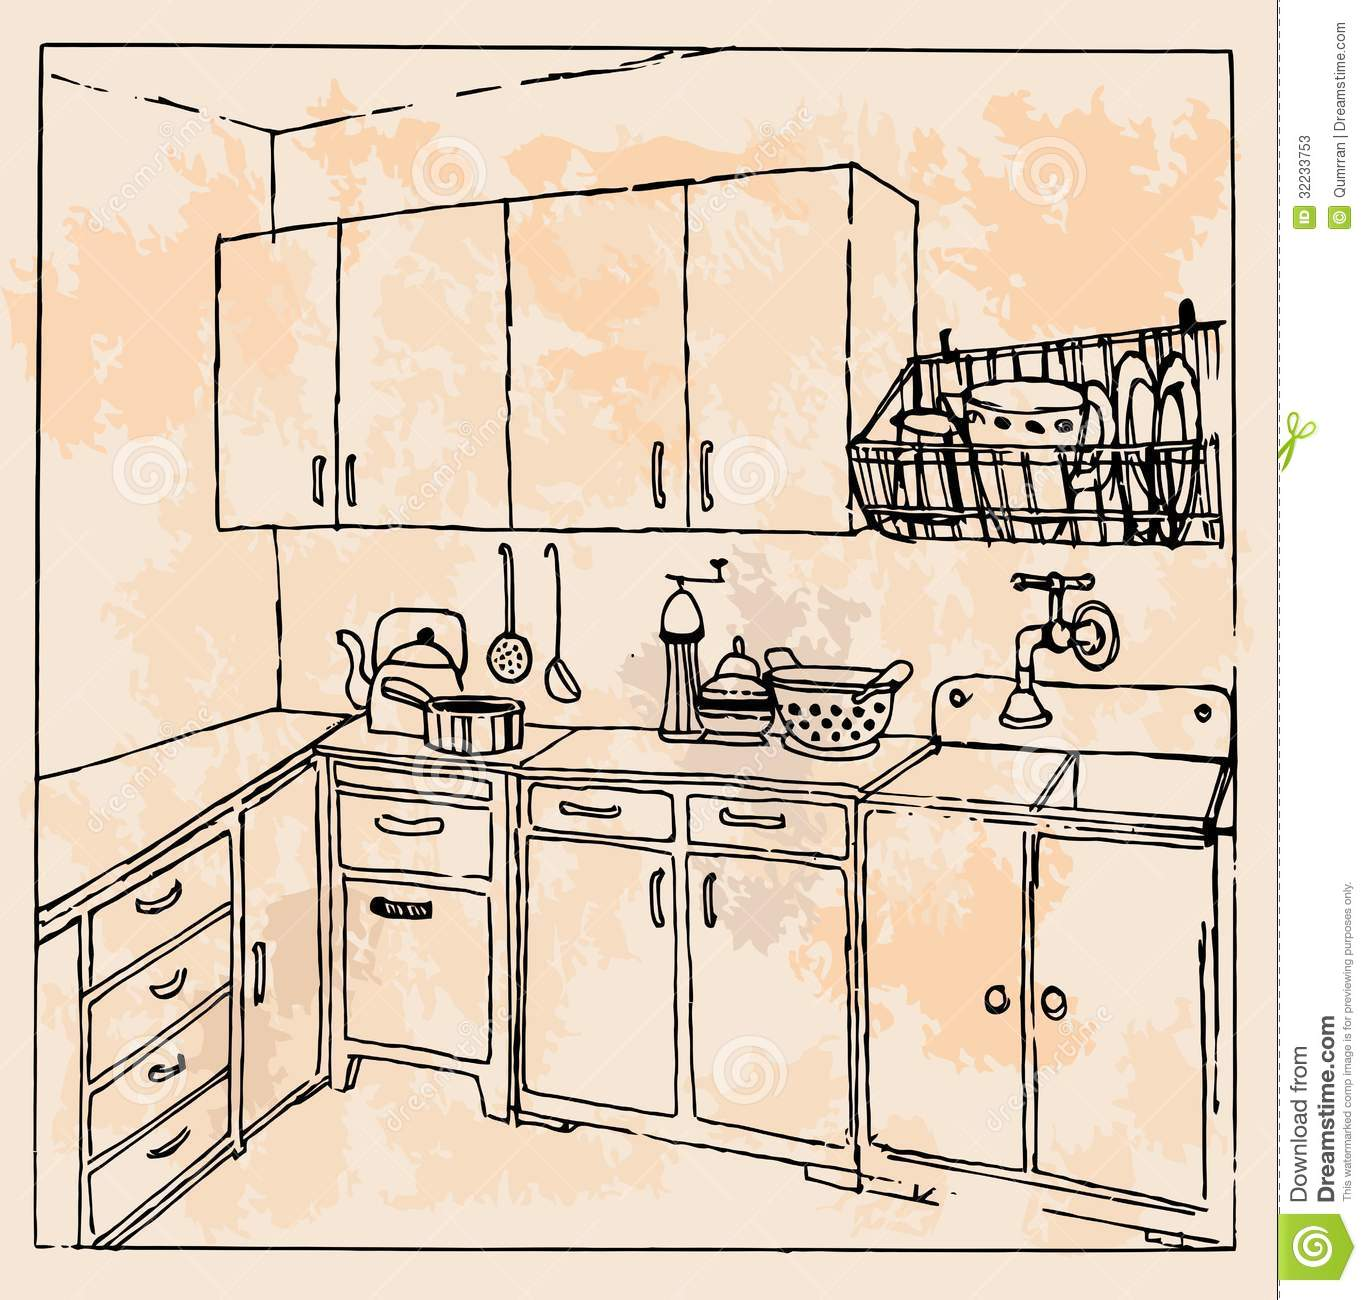 handdrawn vintage kitchen stock photos  image, Kitchen design